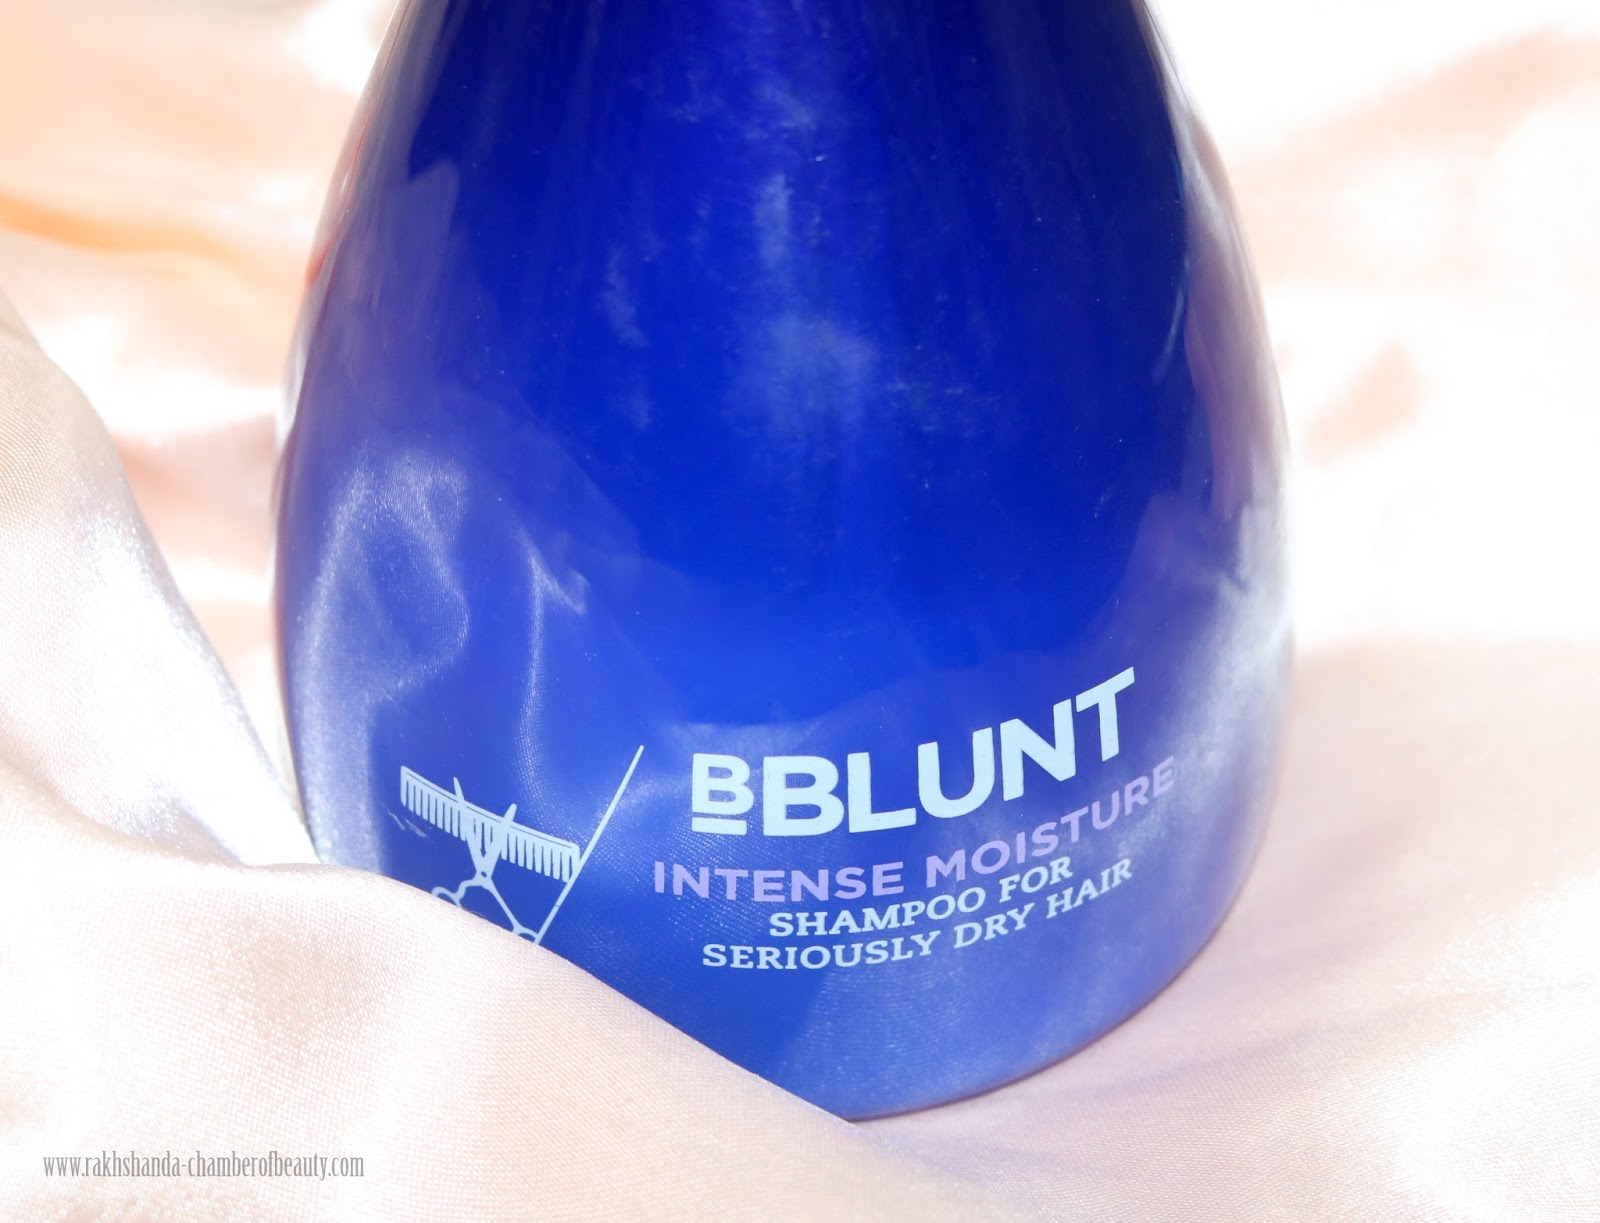 BBlunt, BBlunt Intense Moisture Shampoo,Indian beauty blogger, BBlunt Intense Moisture Shampoo Review & Price,